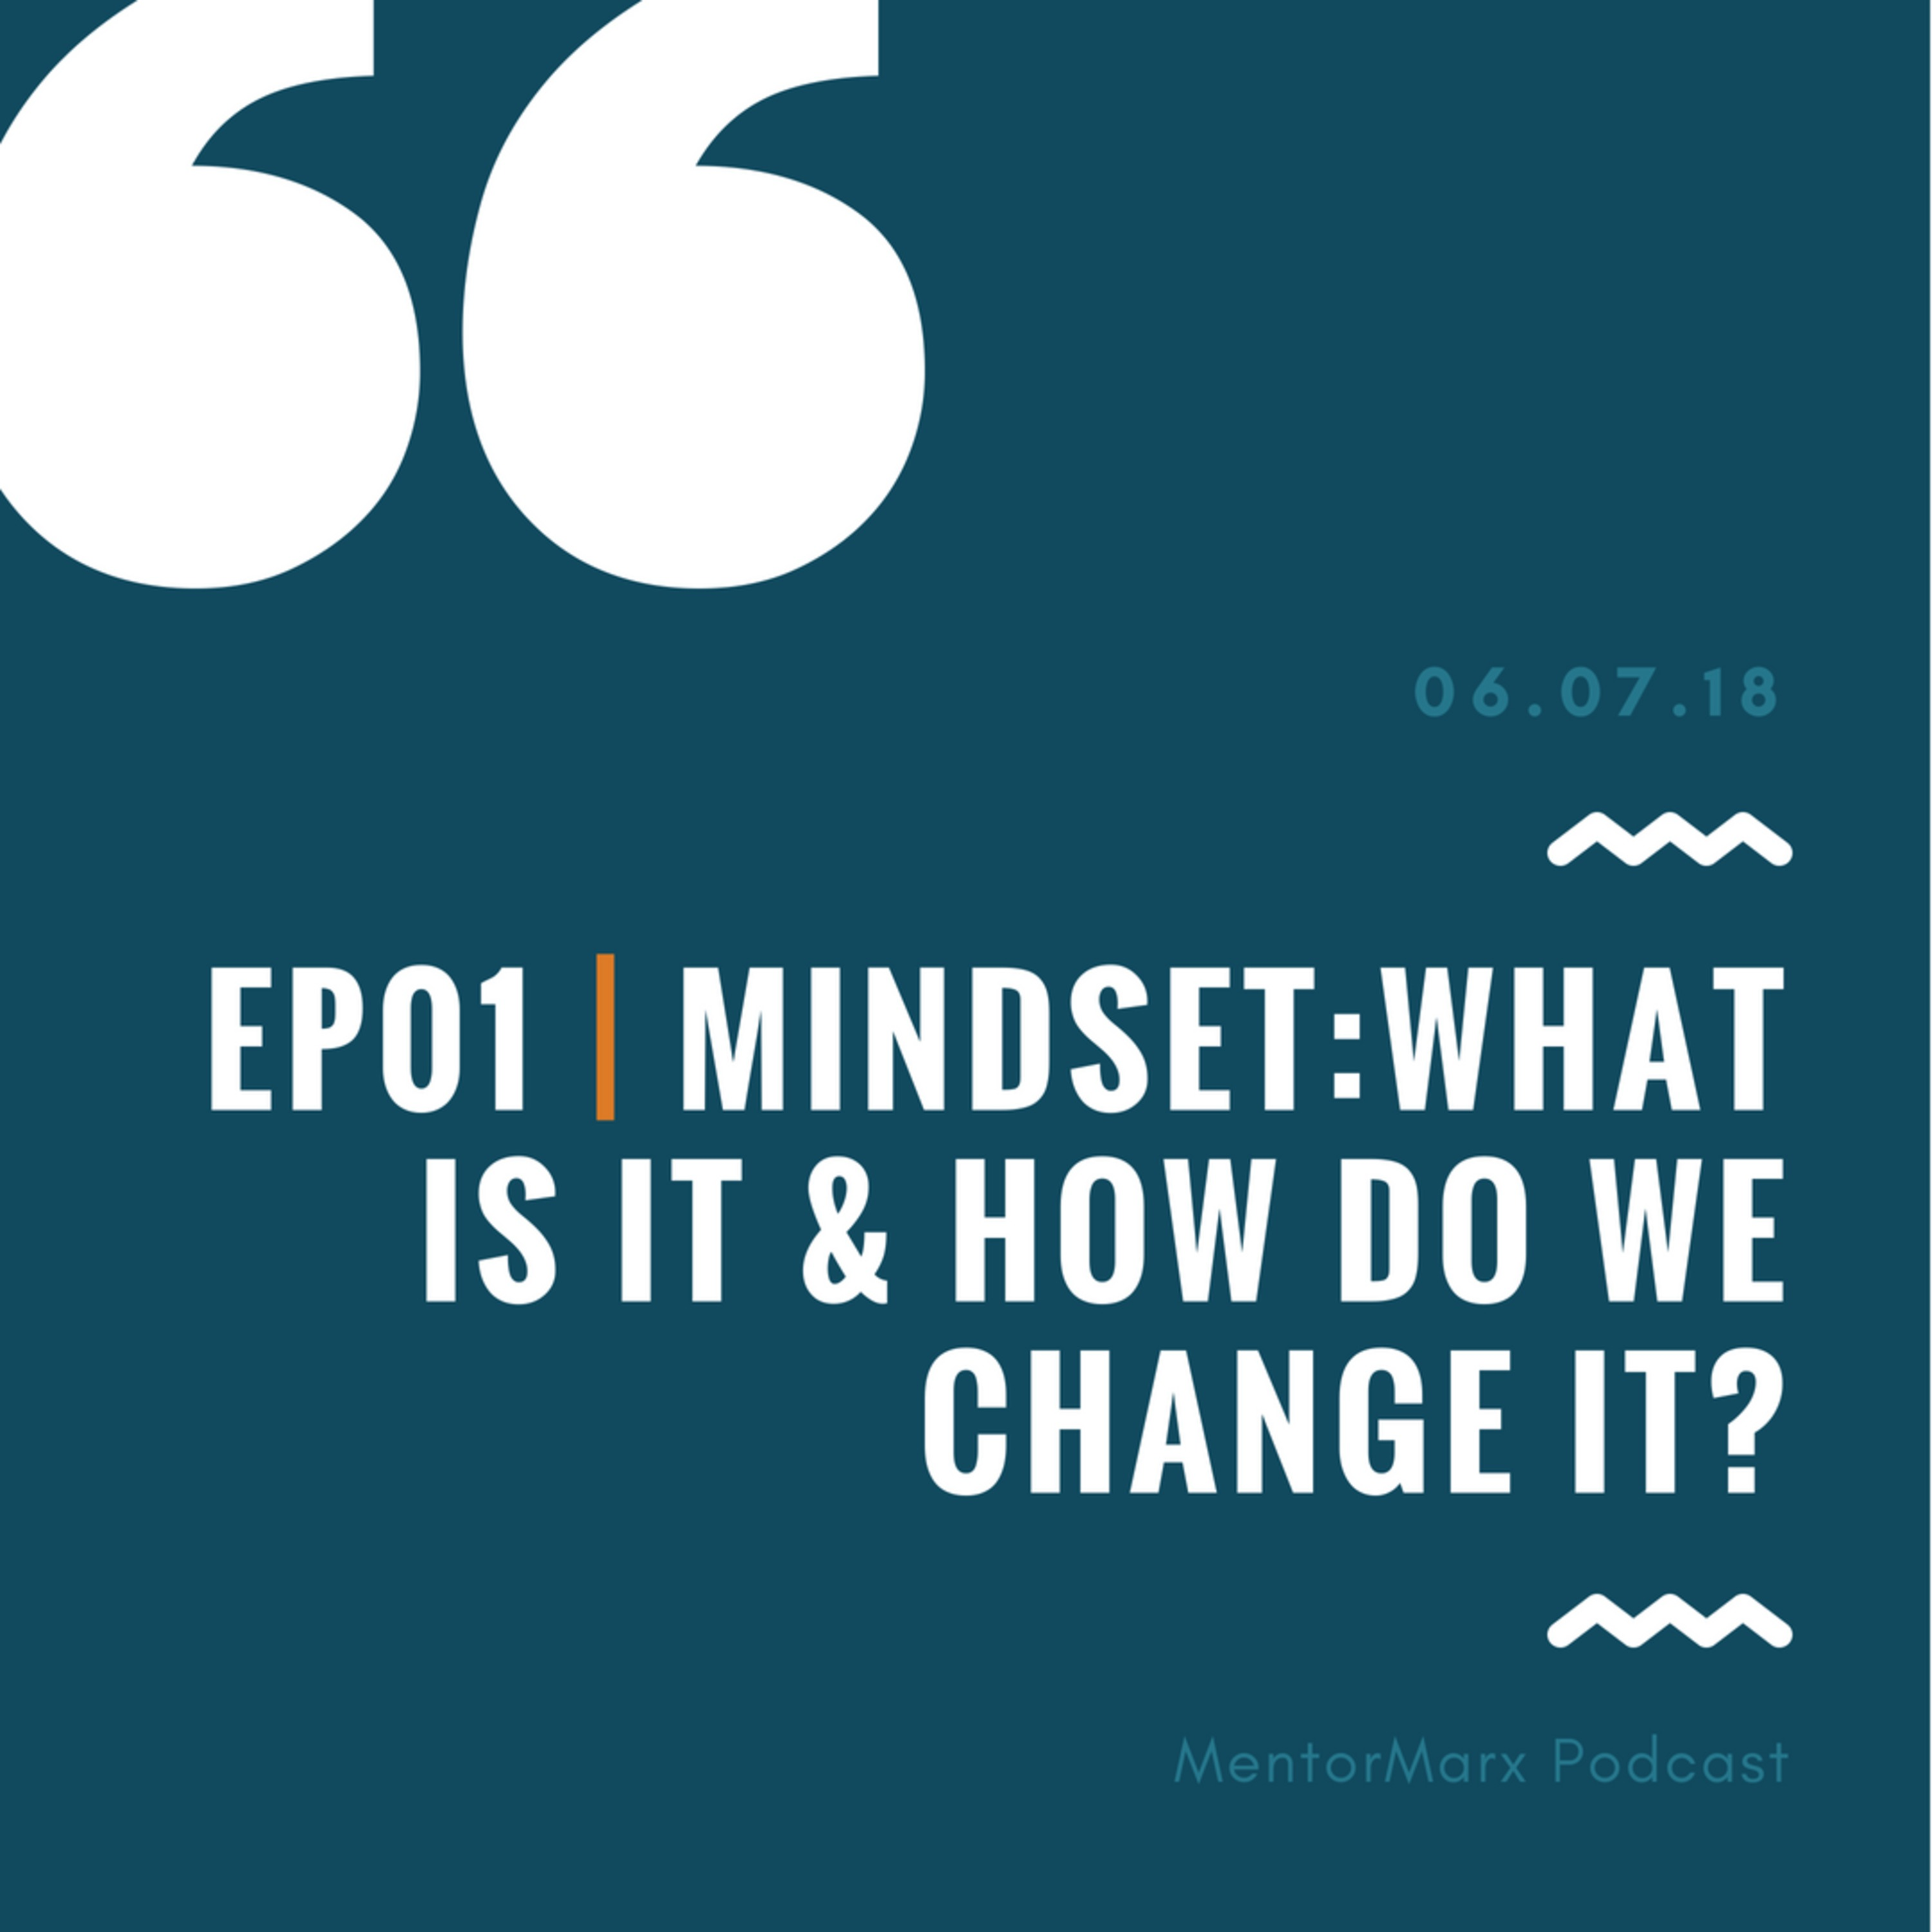 Ep01 | Mindset: What is it & how do we change it?